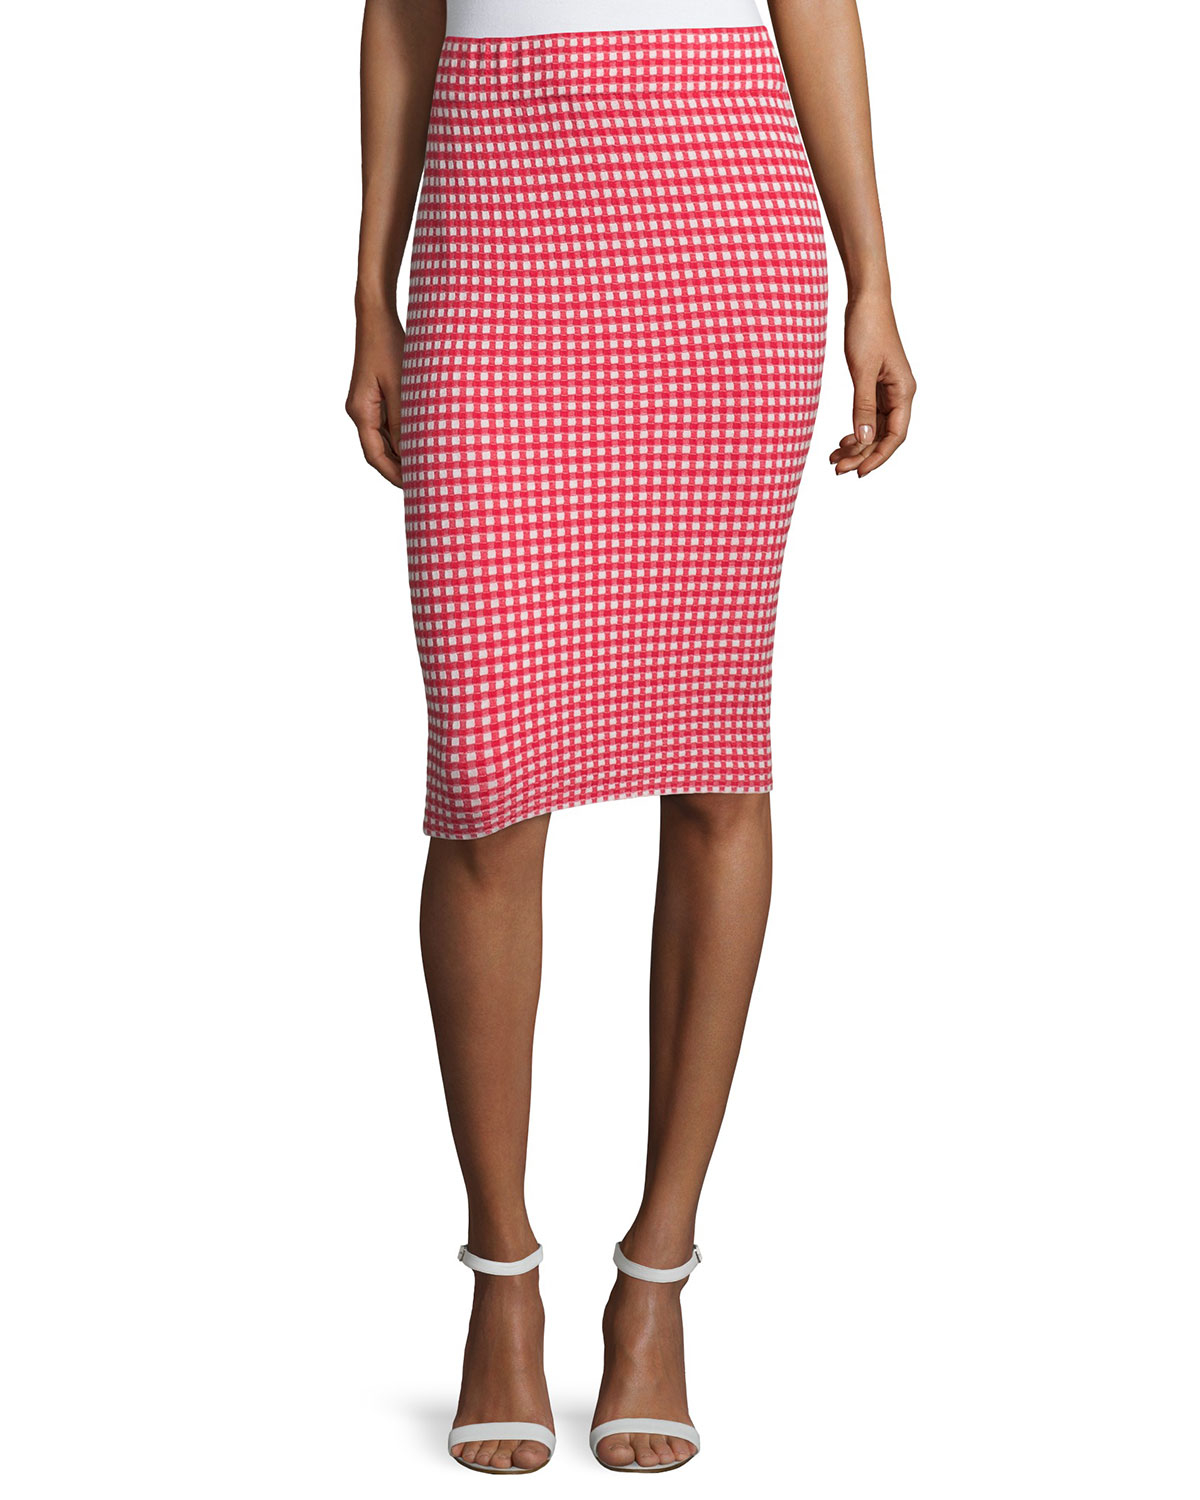 cfd20657e2 Jonathan Simkhai Gingham Stretch Pencil Skirt in Pink - Lyst